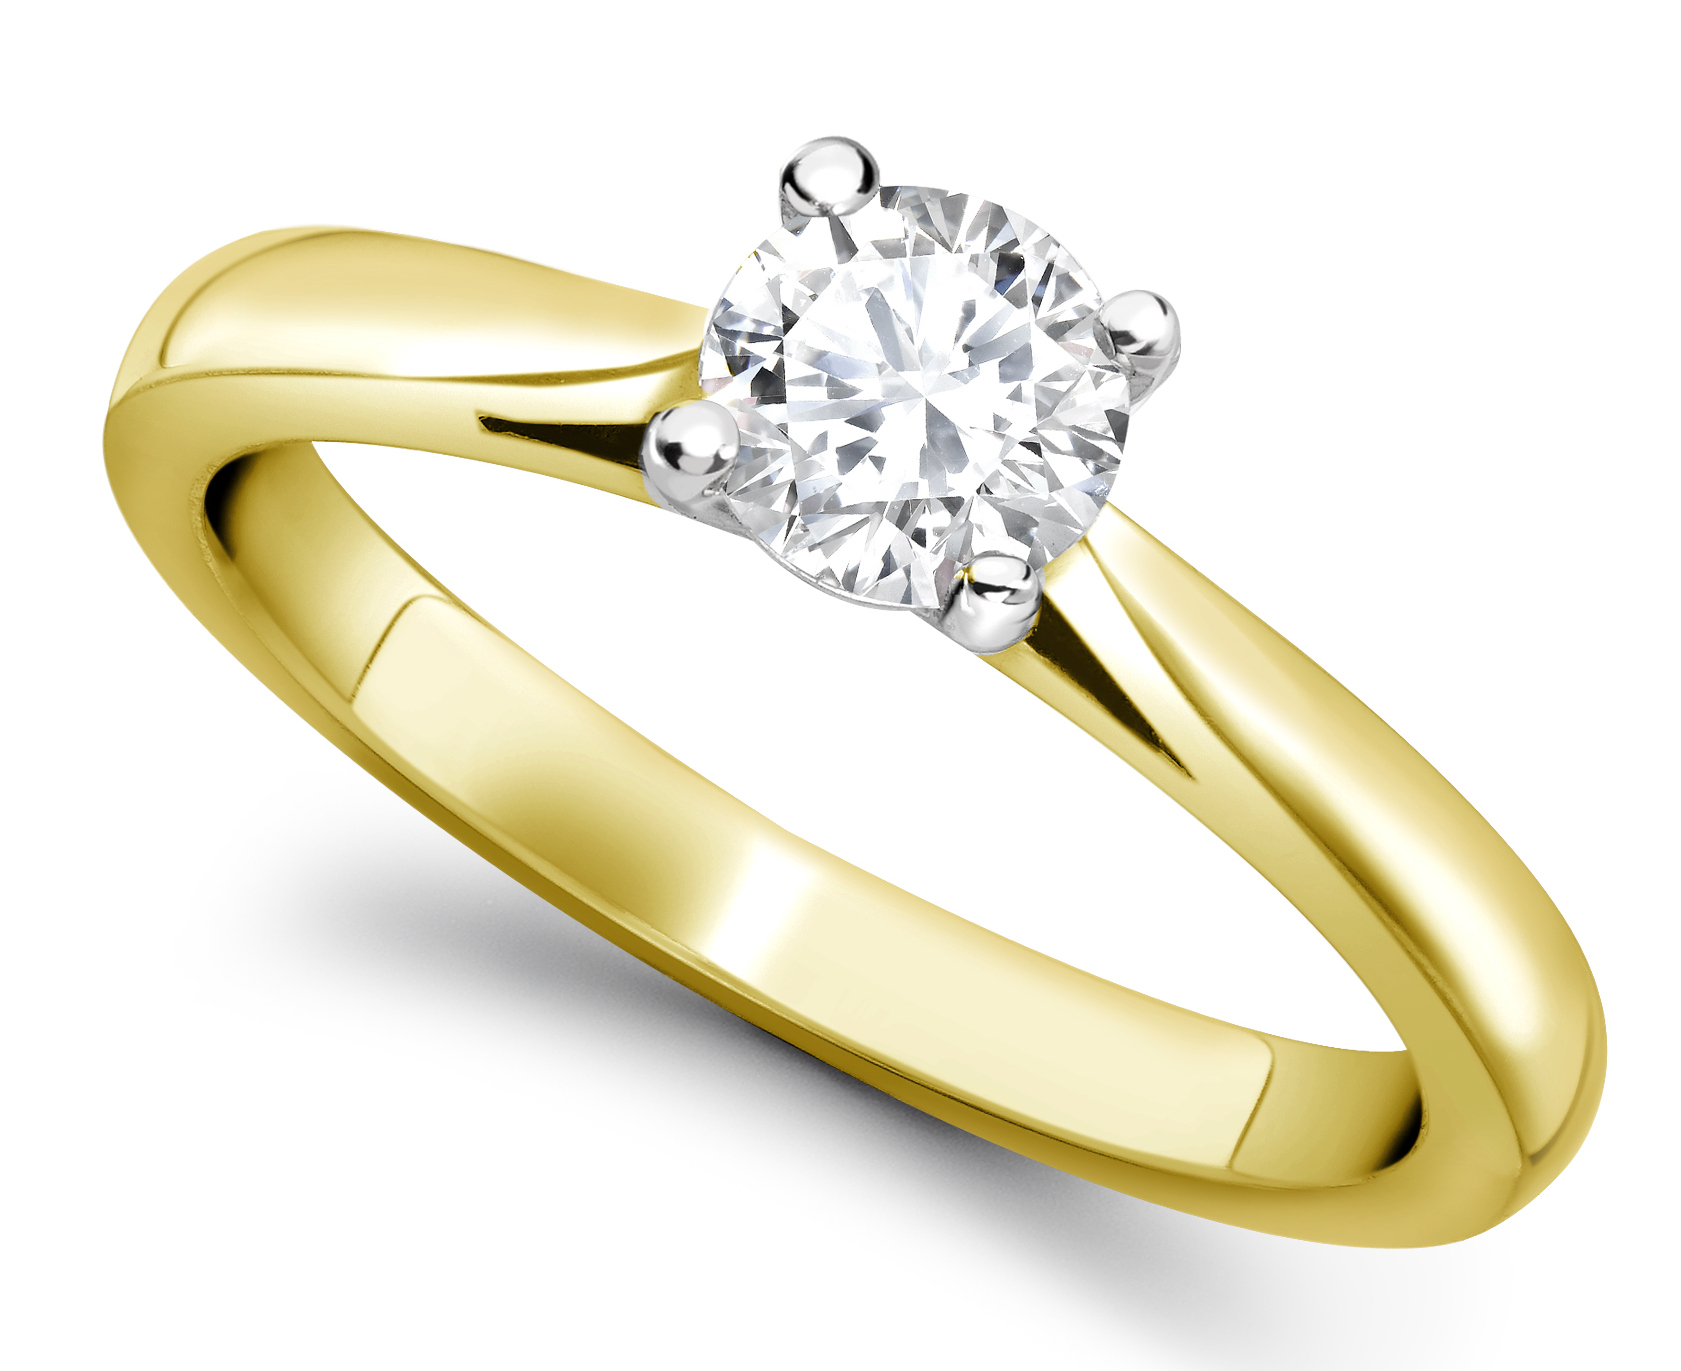 Round 4 Claw Yellow Gold Engagement Ring GRC650YG Main Image